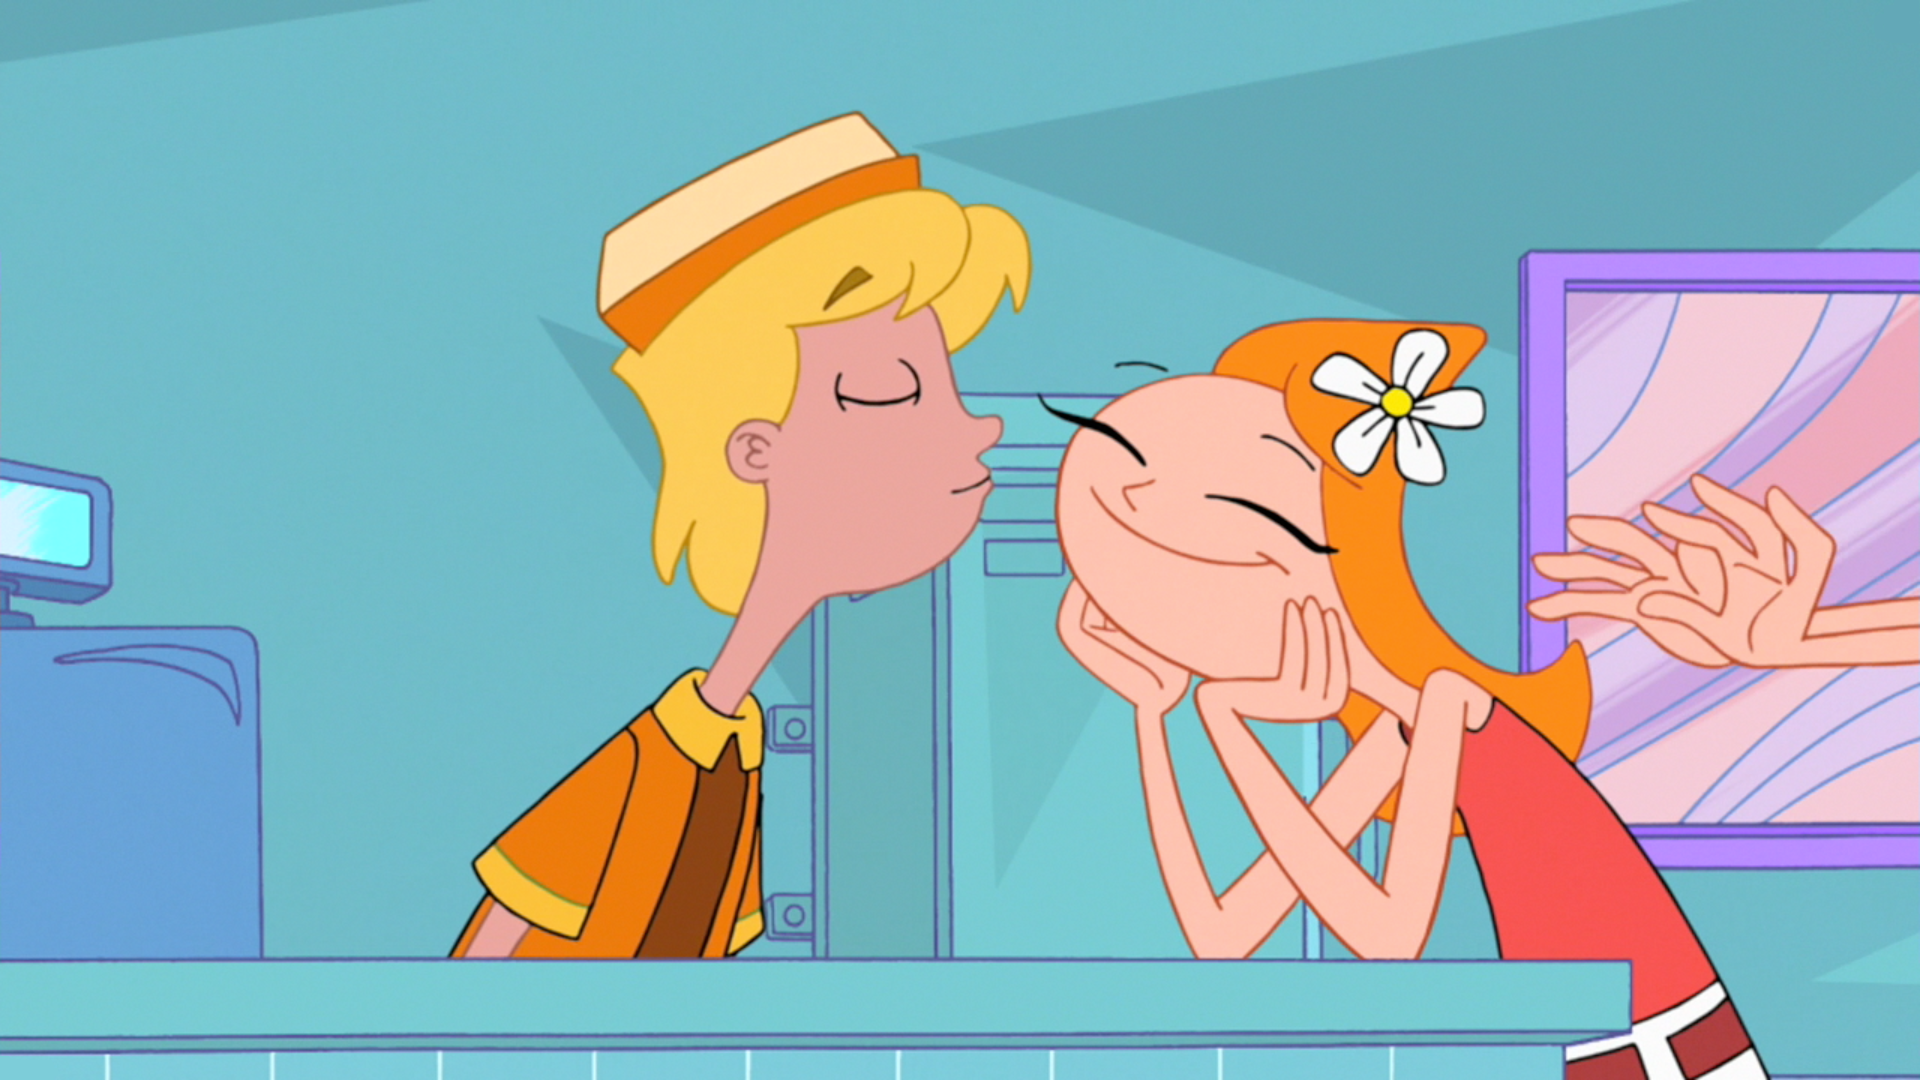 Jeremy phineas and ferb